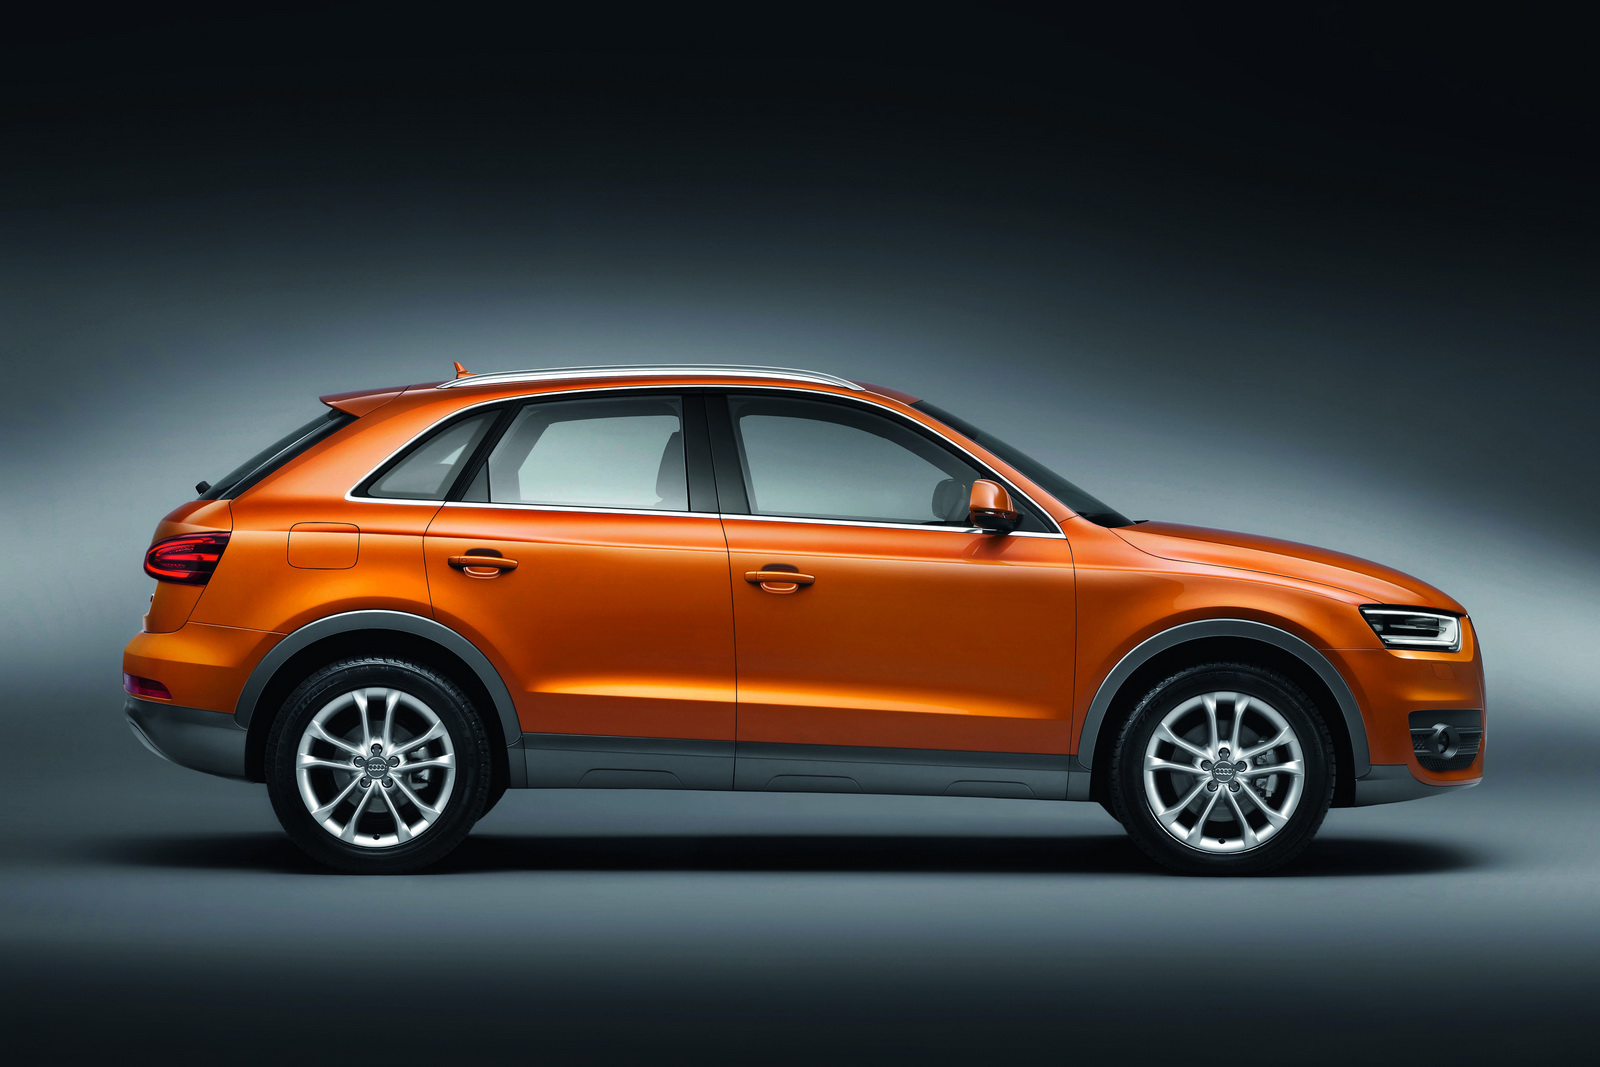 New Q3 Suv To Be Manufactured In Seat In Spain